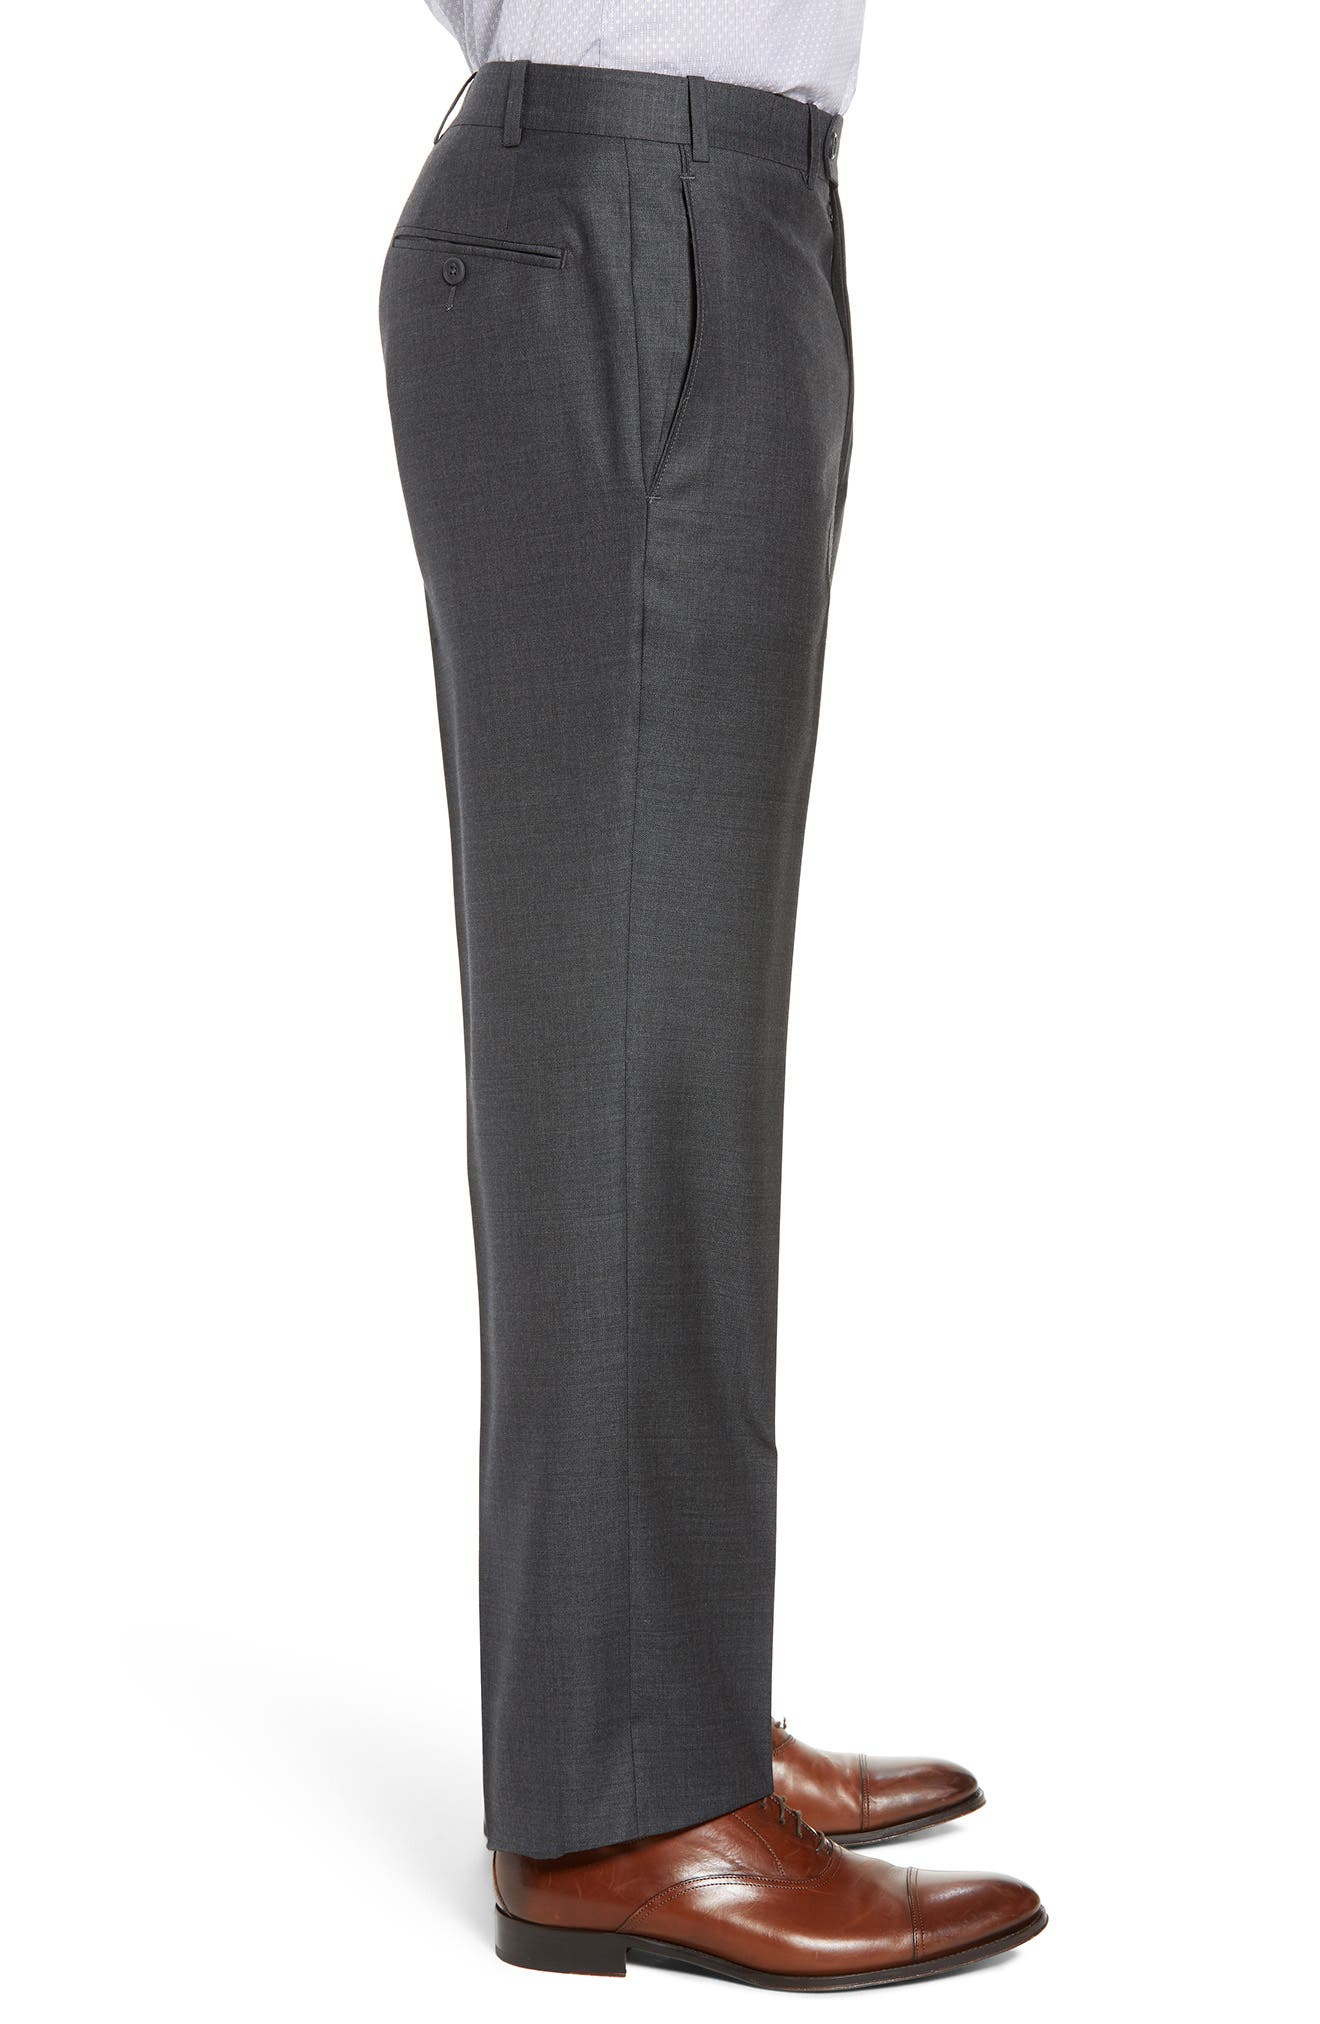 Torino Flat Front Solid Wool Trousers,                             Alternate thumbnail 7, color,